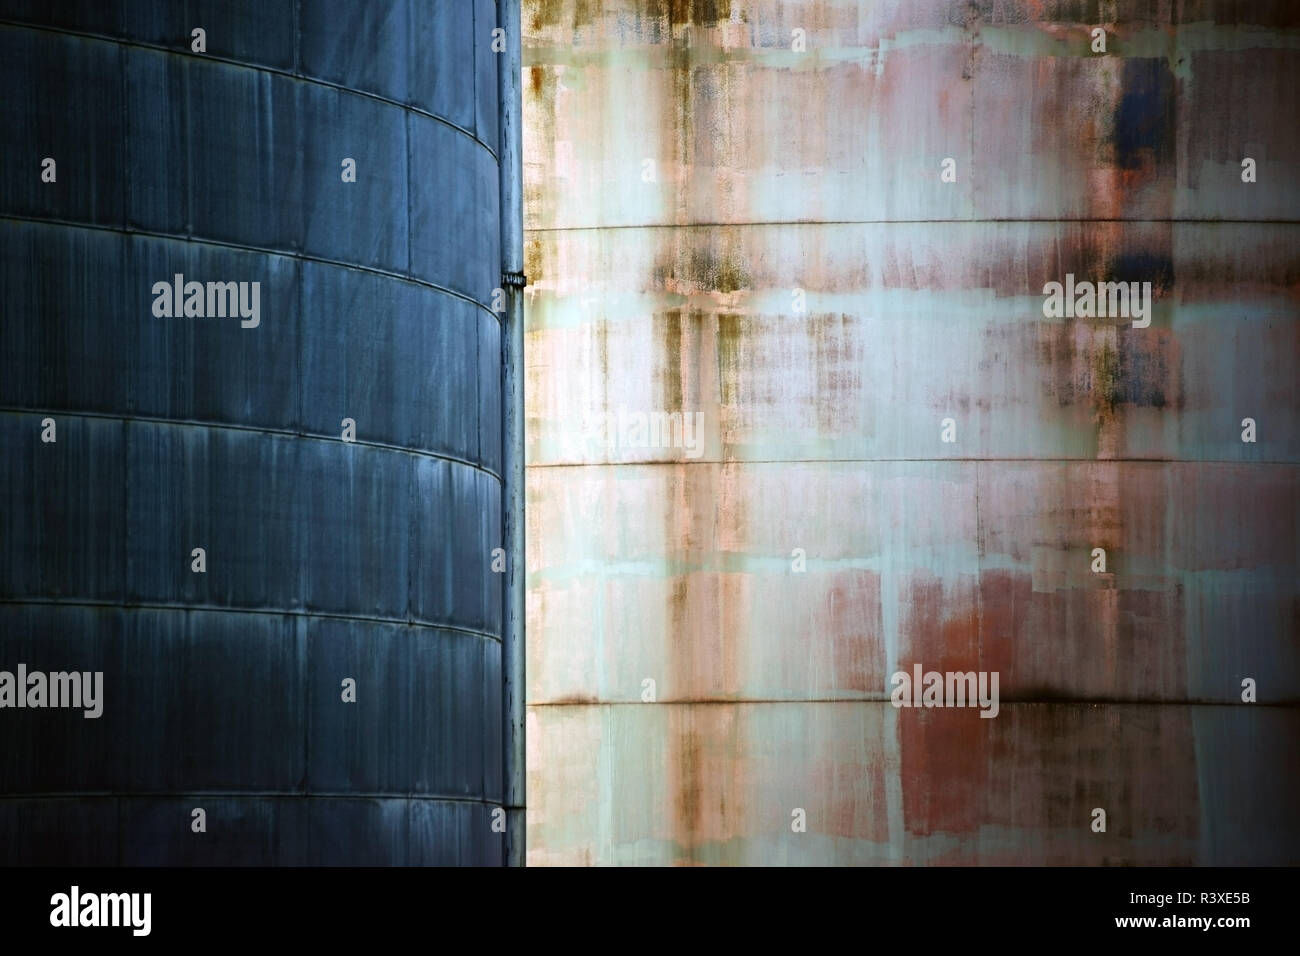 metal surfaces contrast - Stock Image